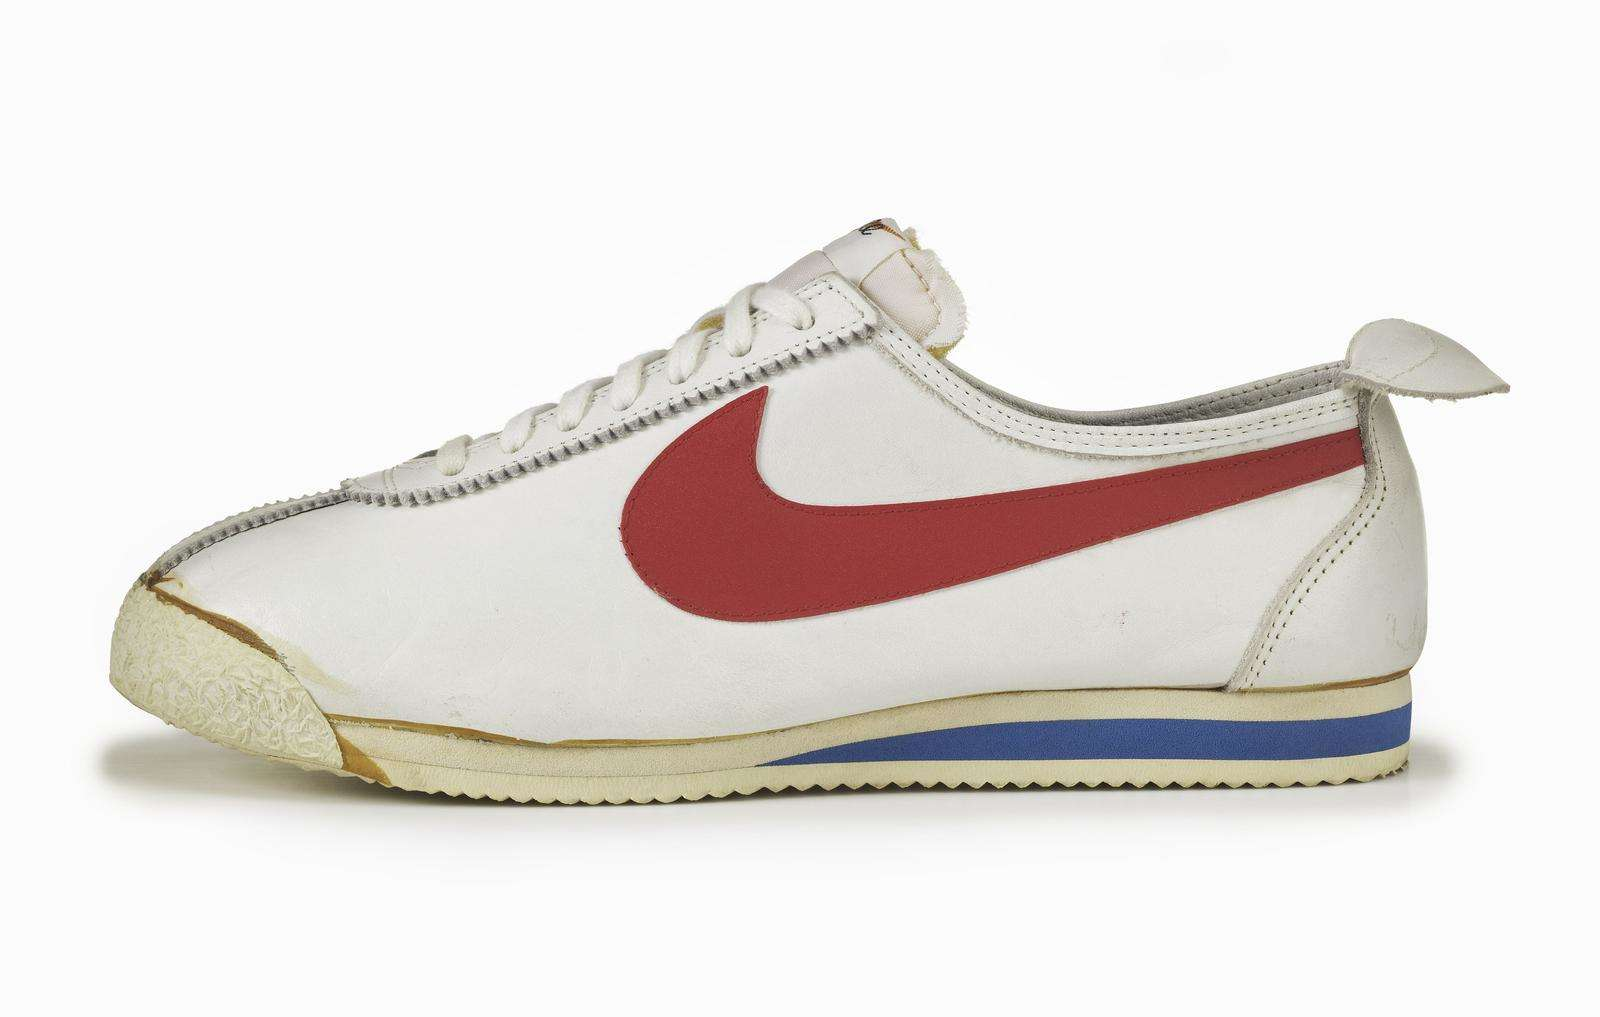 aacb668c8aee69 The Iconic Nike Cortez Is Celebrating Its 45th Anniversary